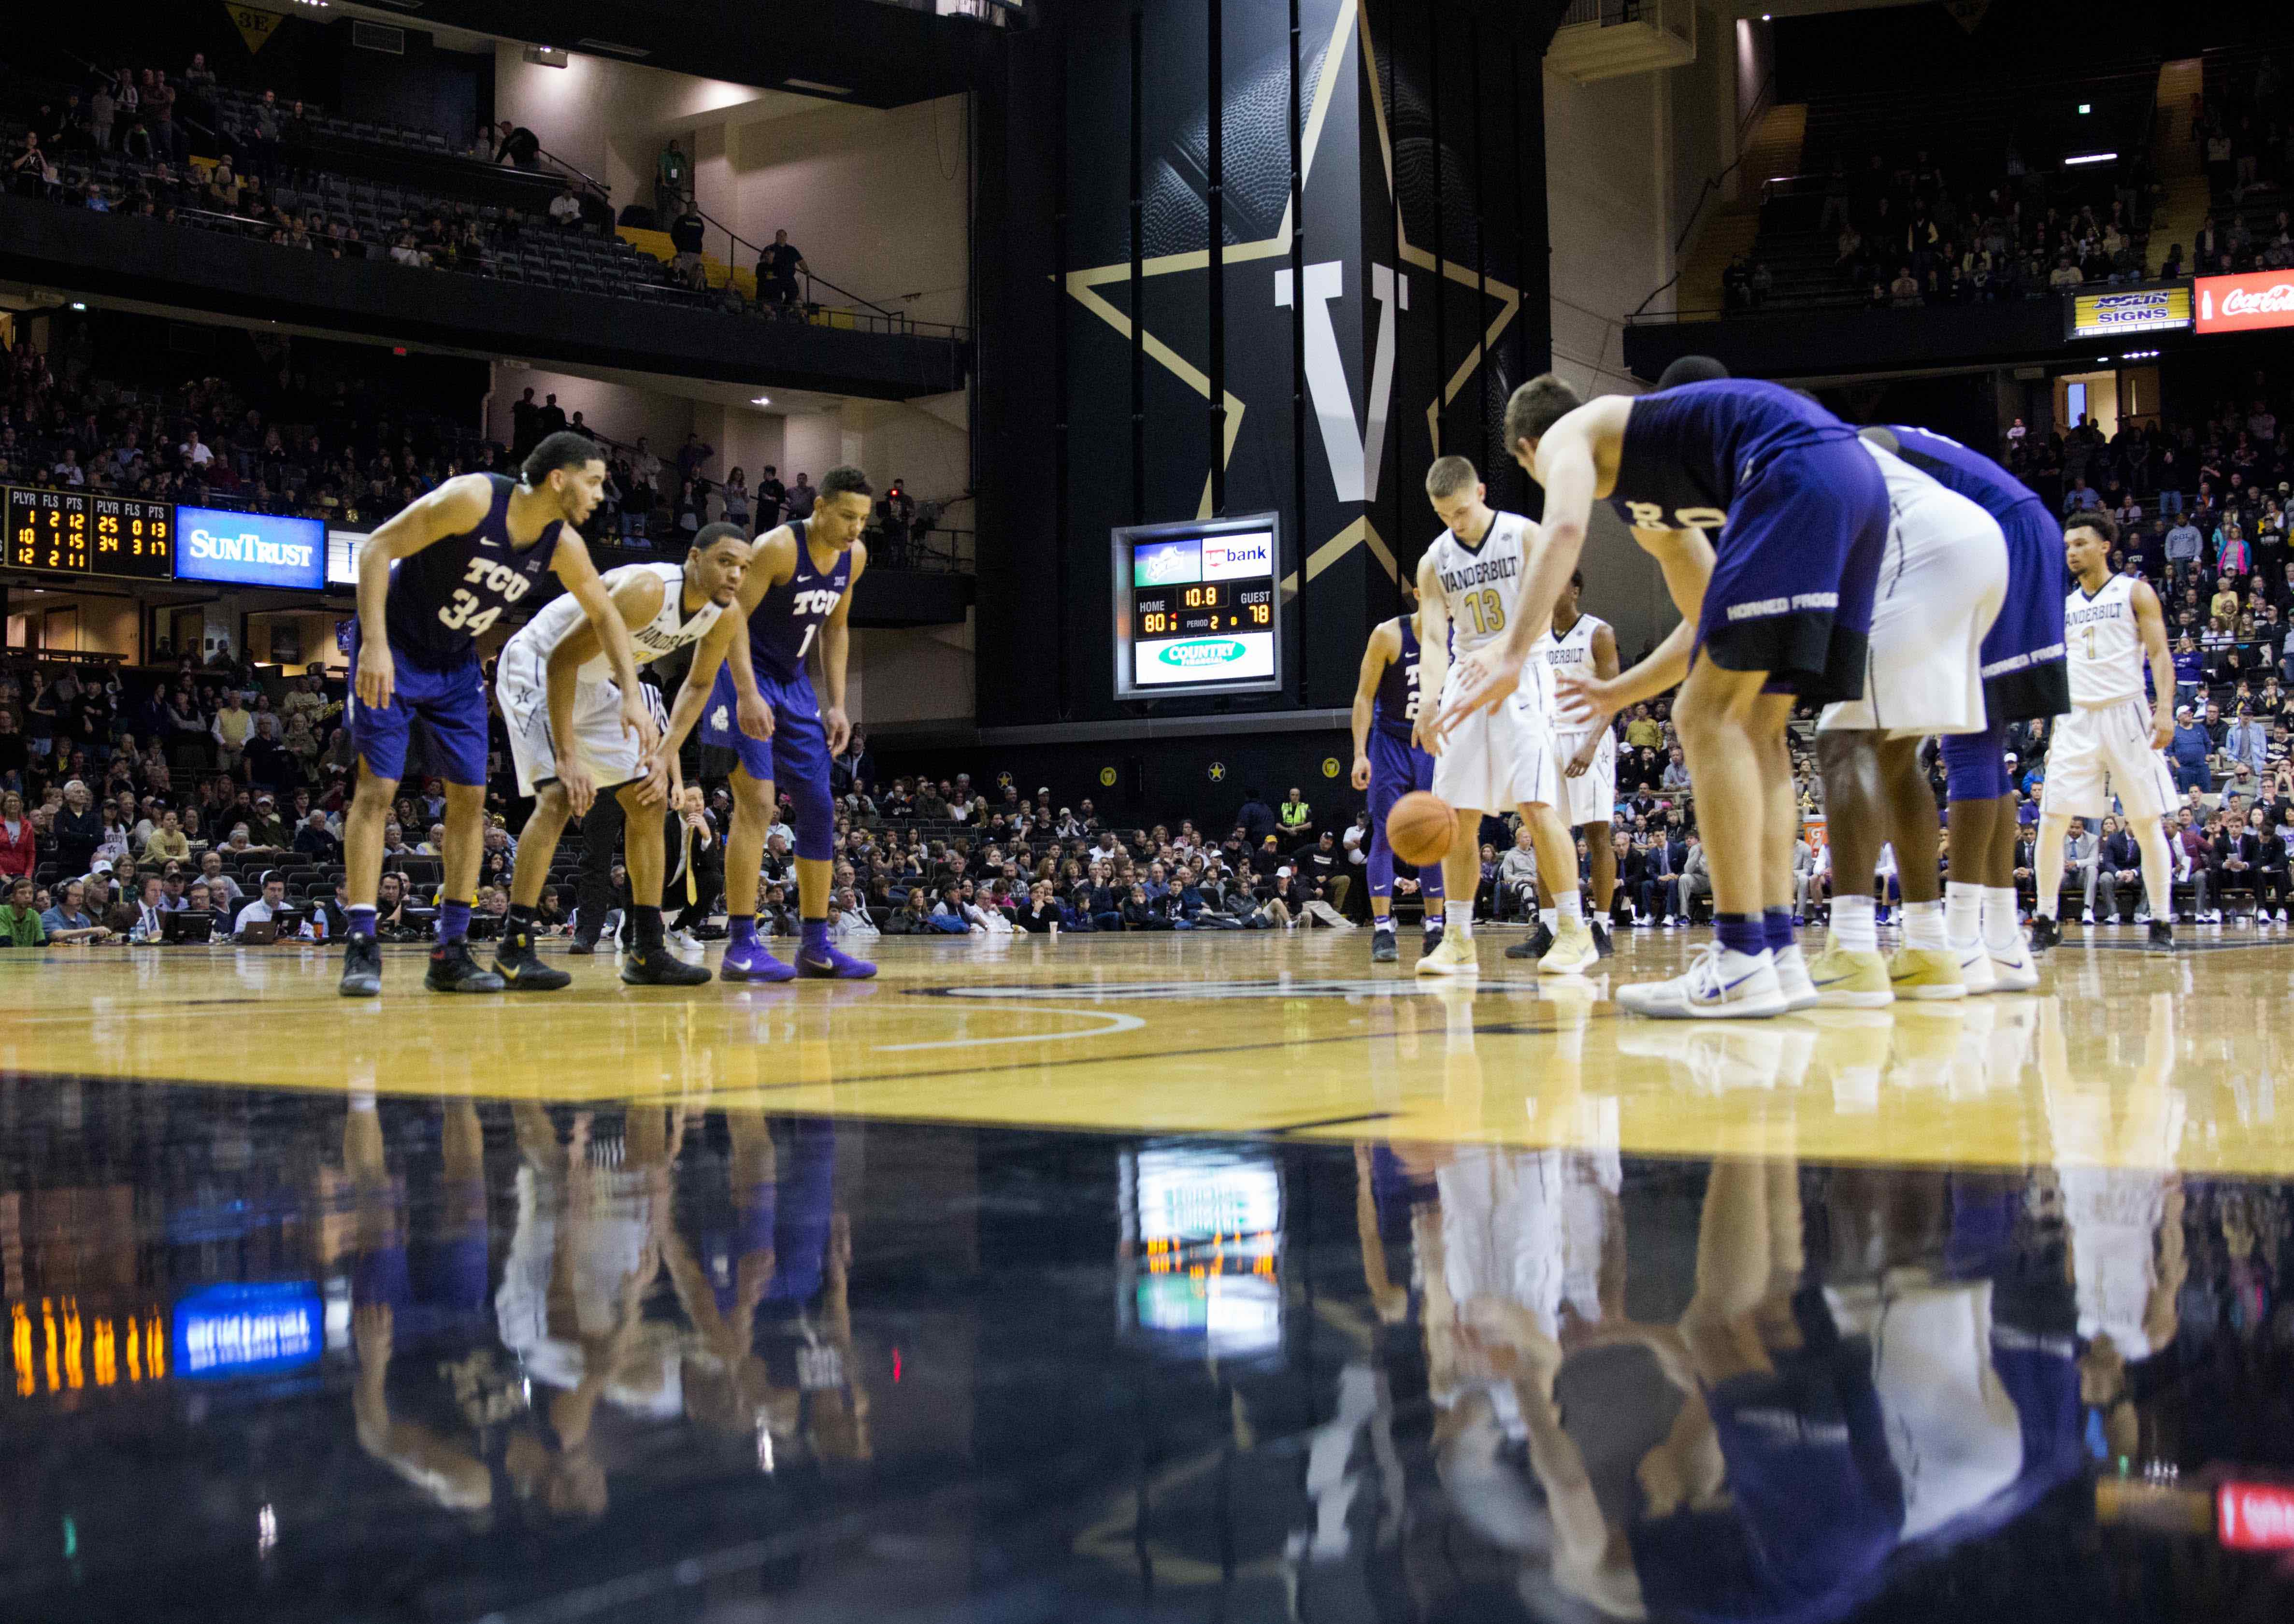 Vanderbilt men's basketball upsets TCU 81-78 on Saturday, January 27, 2018 in Memorial Gym. (Photo by Emily Goncalves)